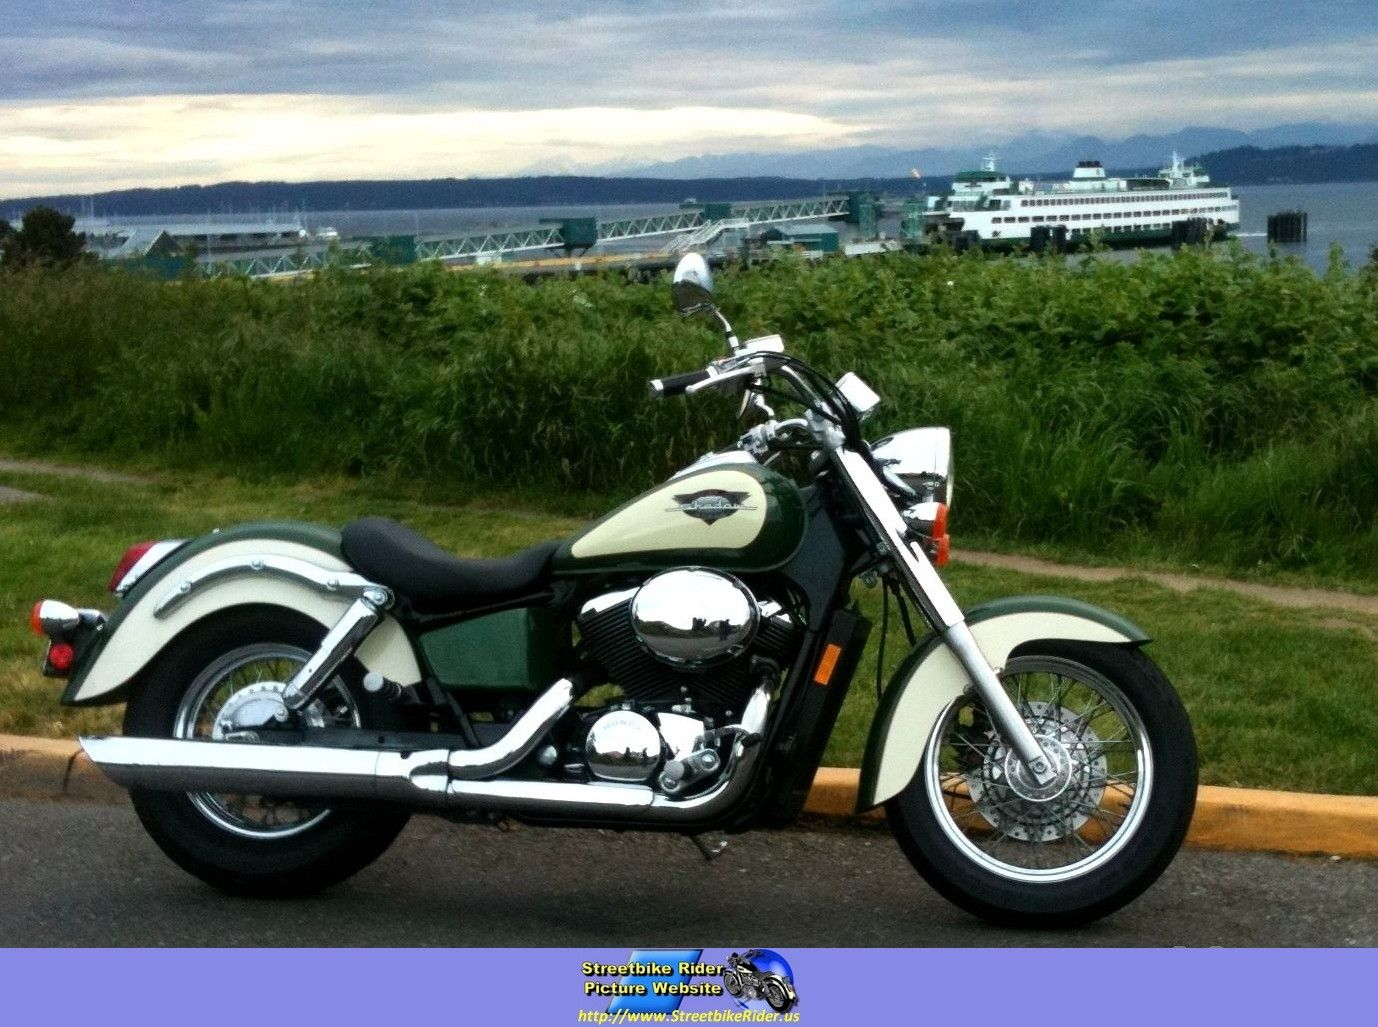 1999 honda shadow 750 ace green another view of my favorite bike  [ 1378 x 1027 Pixel ]